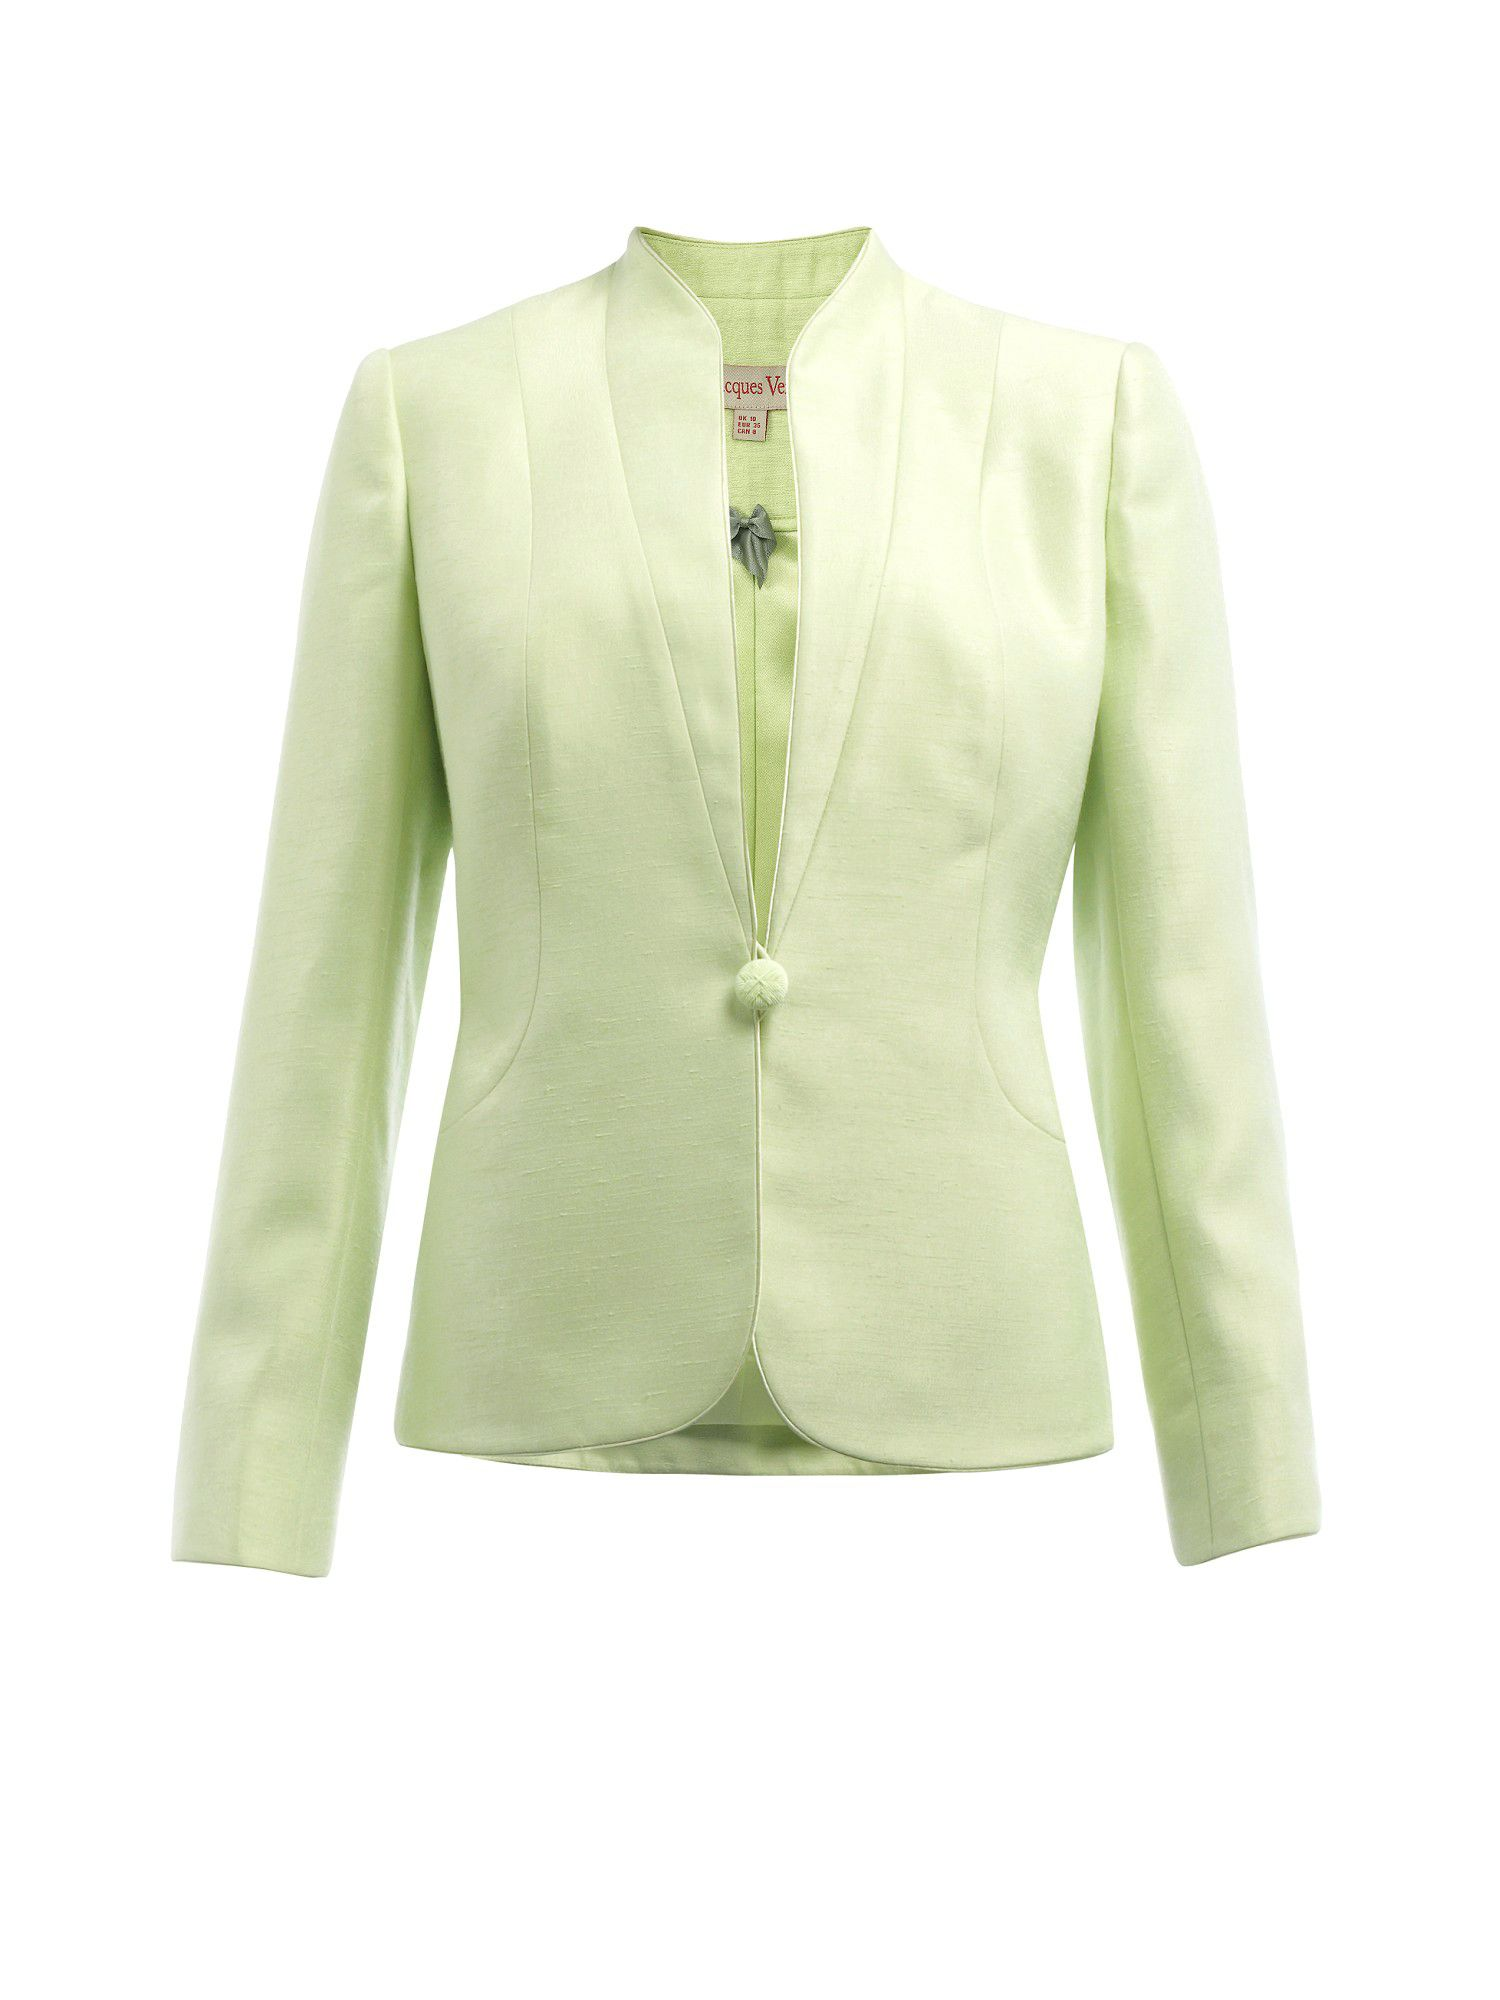 Apple stand collar jacket